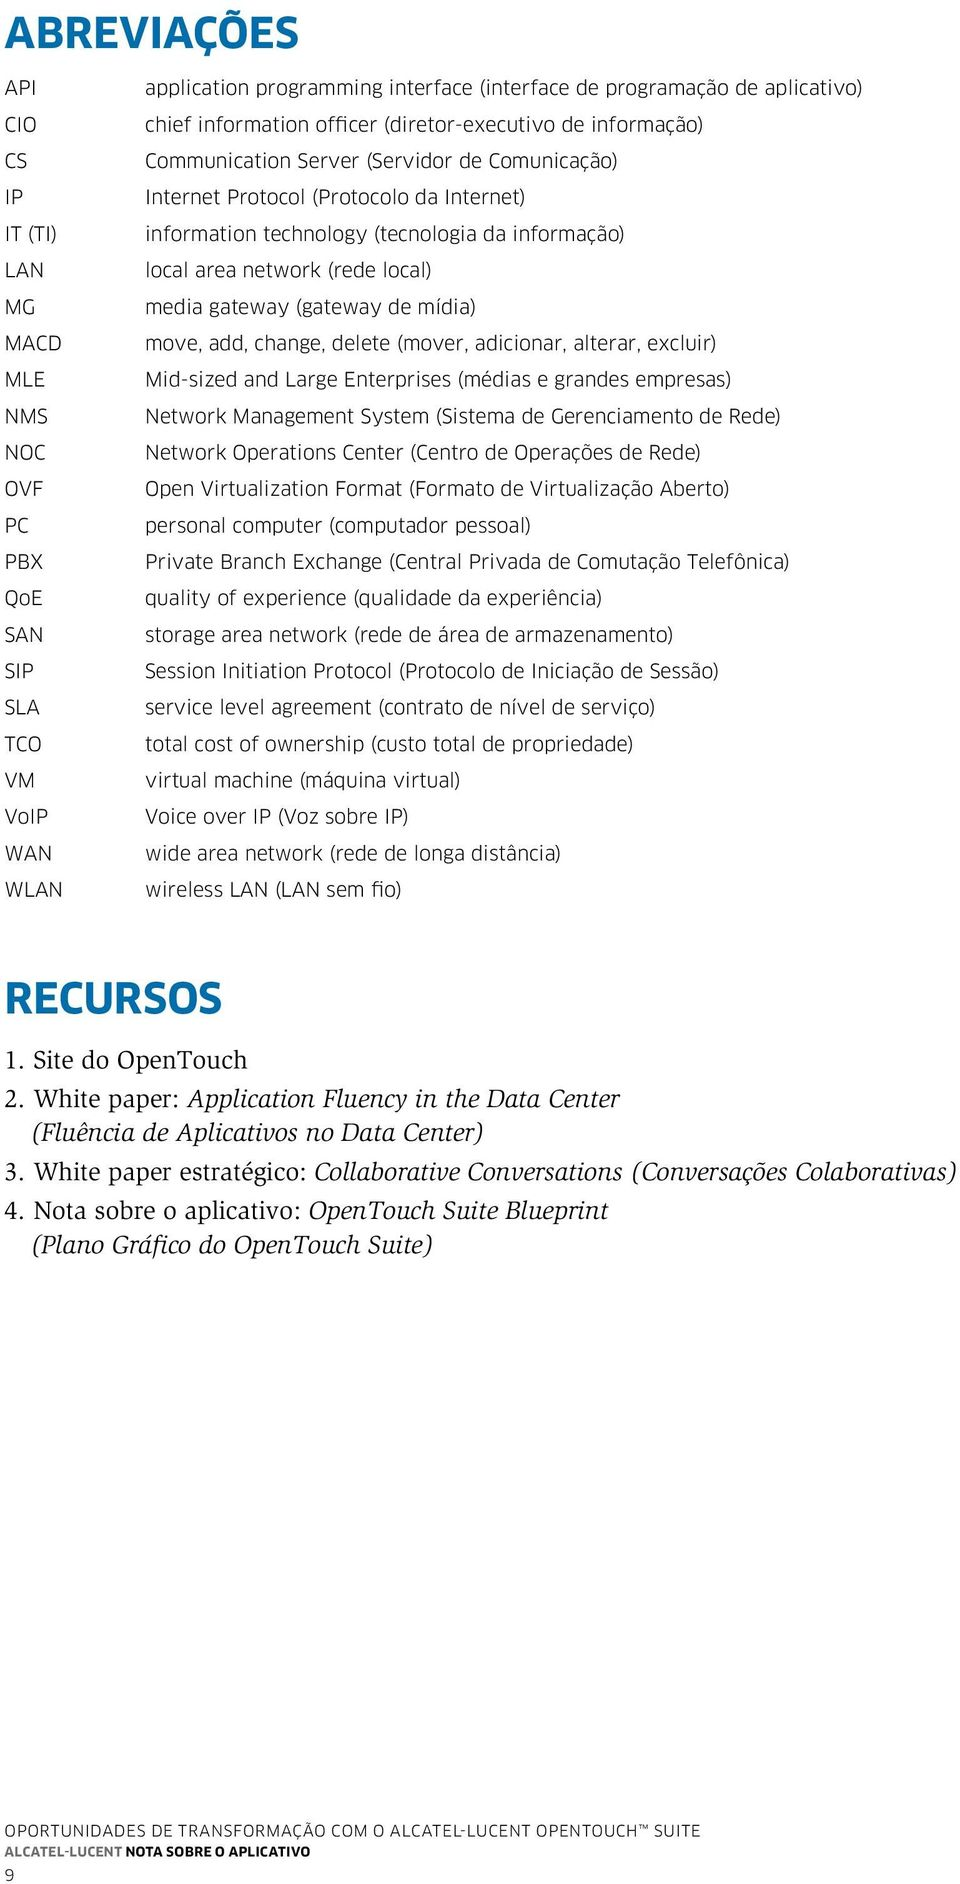 (rede local) media gateway (gateway de mídia) move, add, change, delete (mover, adicionar, alterar, excluir) Mid-sized and Large Enterprises (médias e grandes empresas) Network Management System